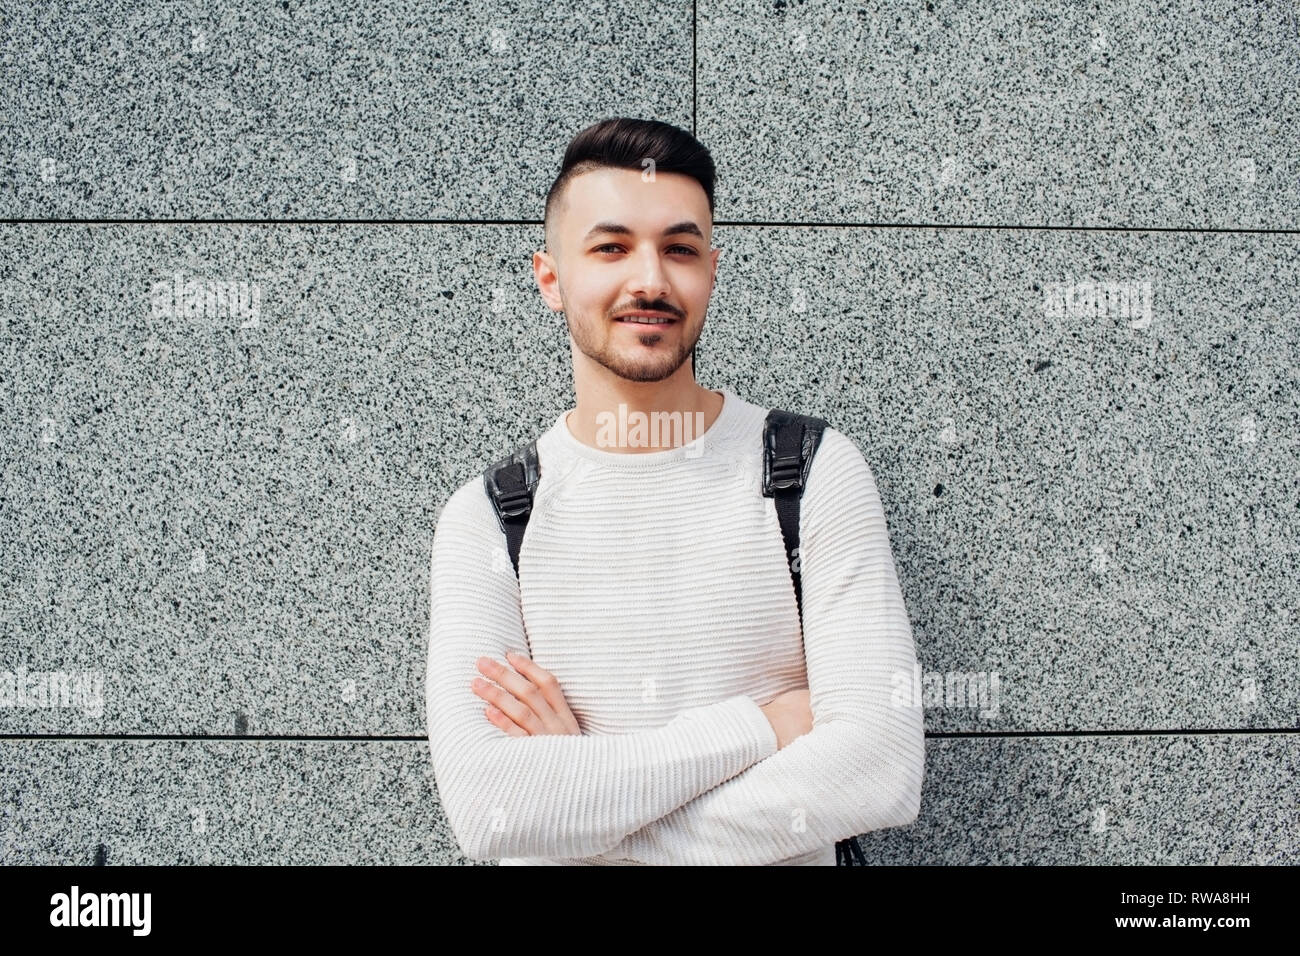 Arabian student with backpack standing by stone wall outside. Young smiling man with crossed hands waiting for groupmates. - Stock Image